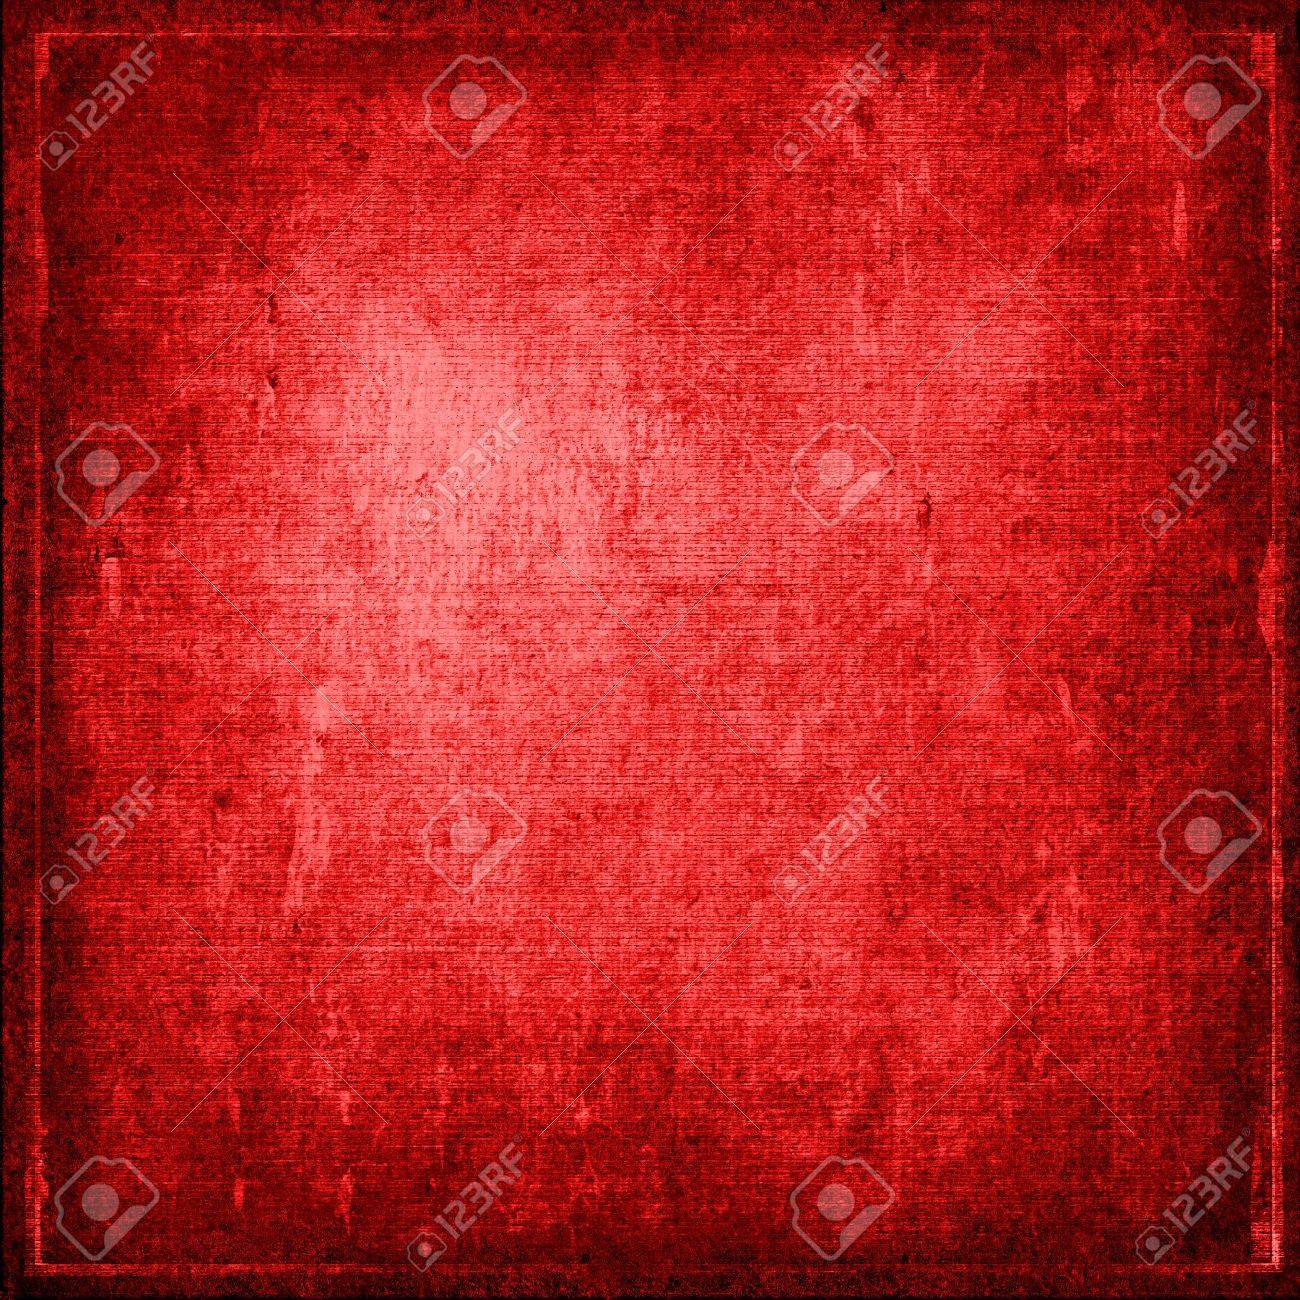 Grunge Paint Red Texture Background Stock Photo - 6685213